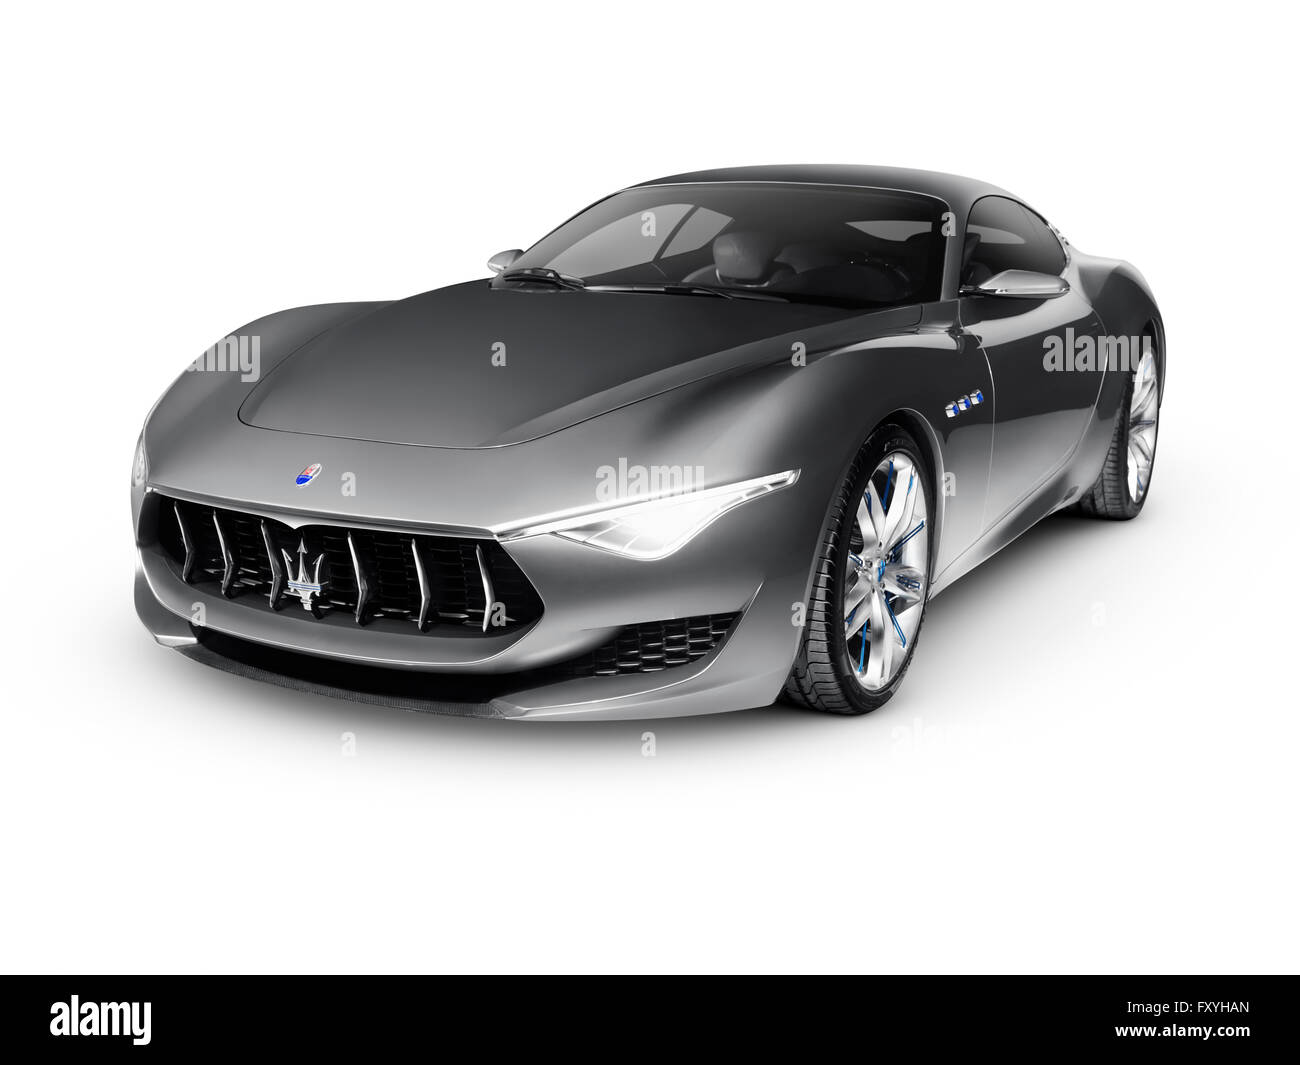 2015 Maserati Alfieri Concept Luxury Car Production In 2016 Gray